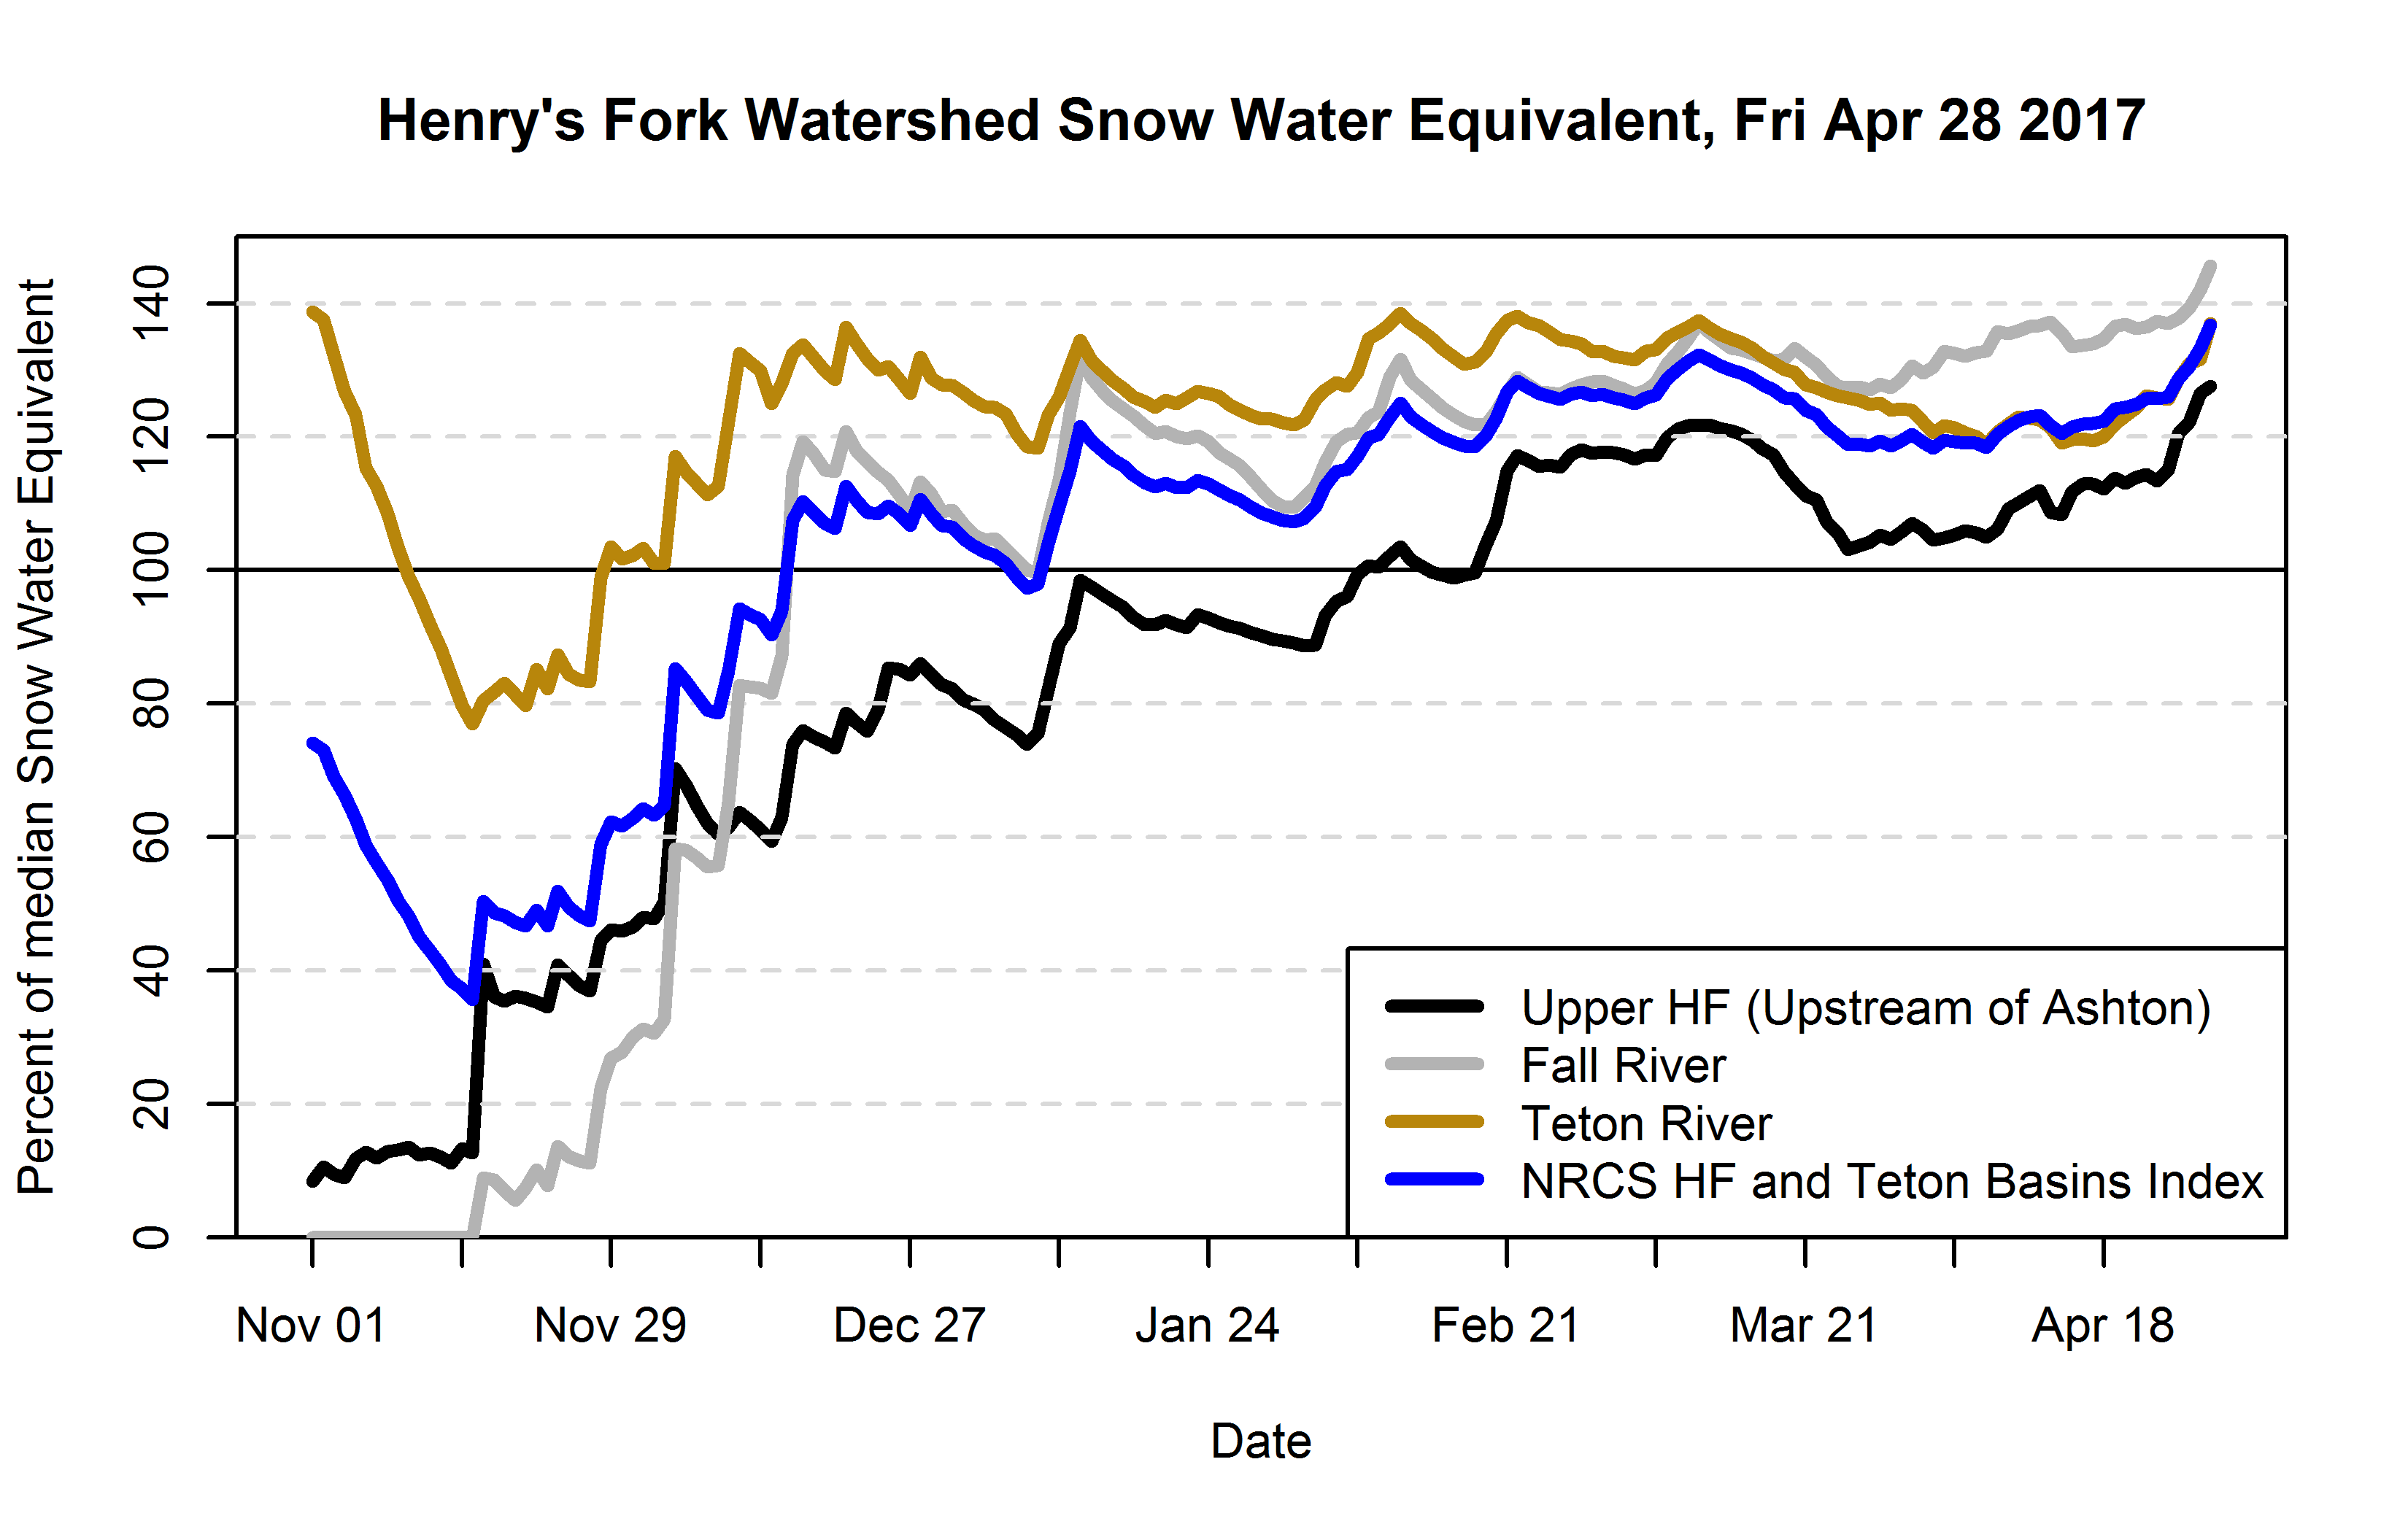 Graph of snow-water-equivalent as a percent of median.